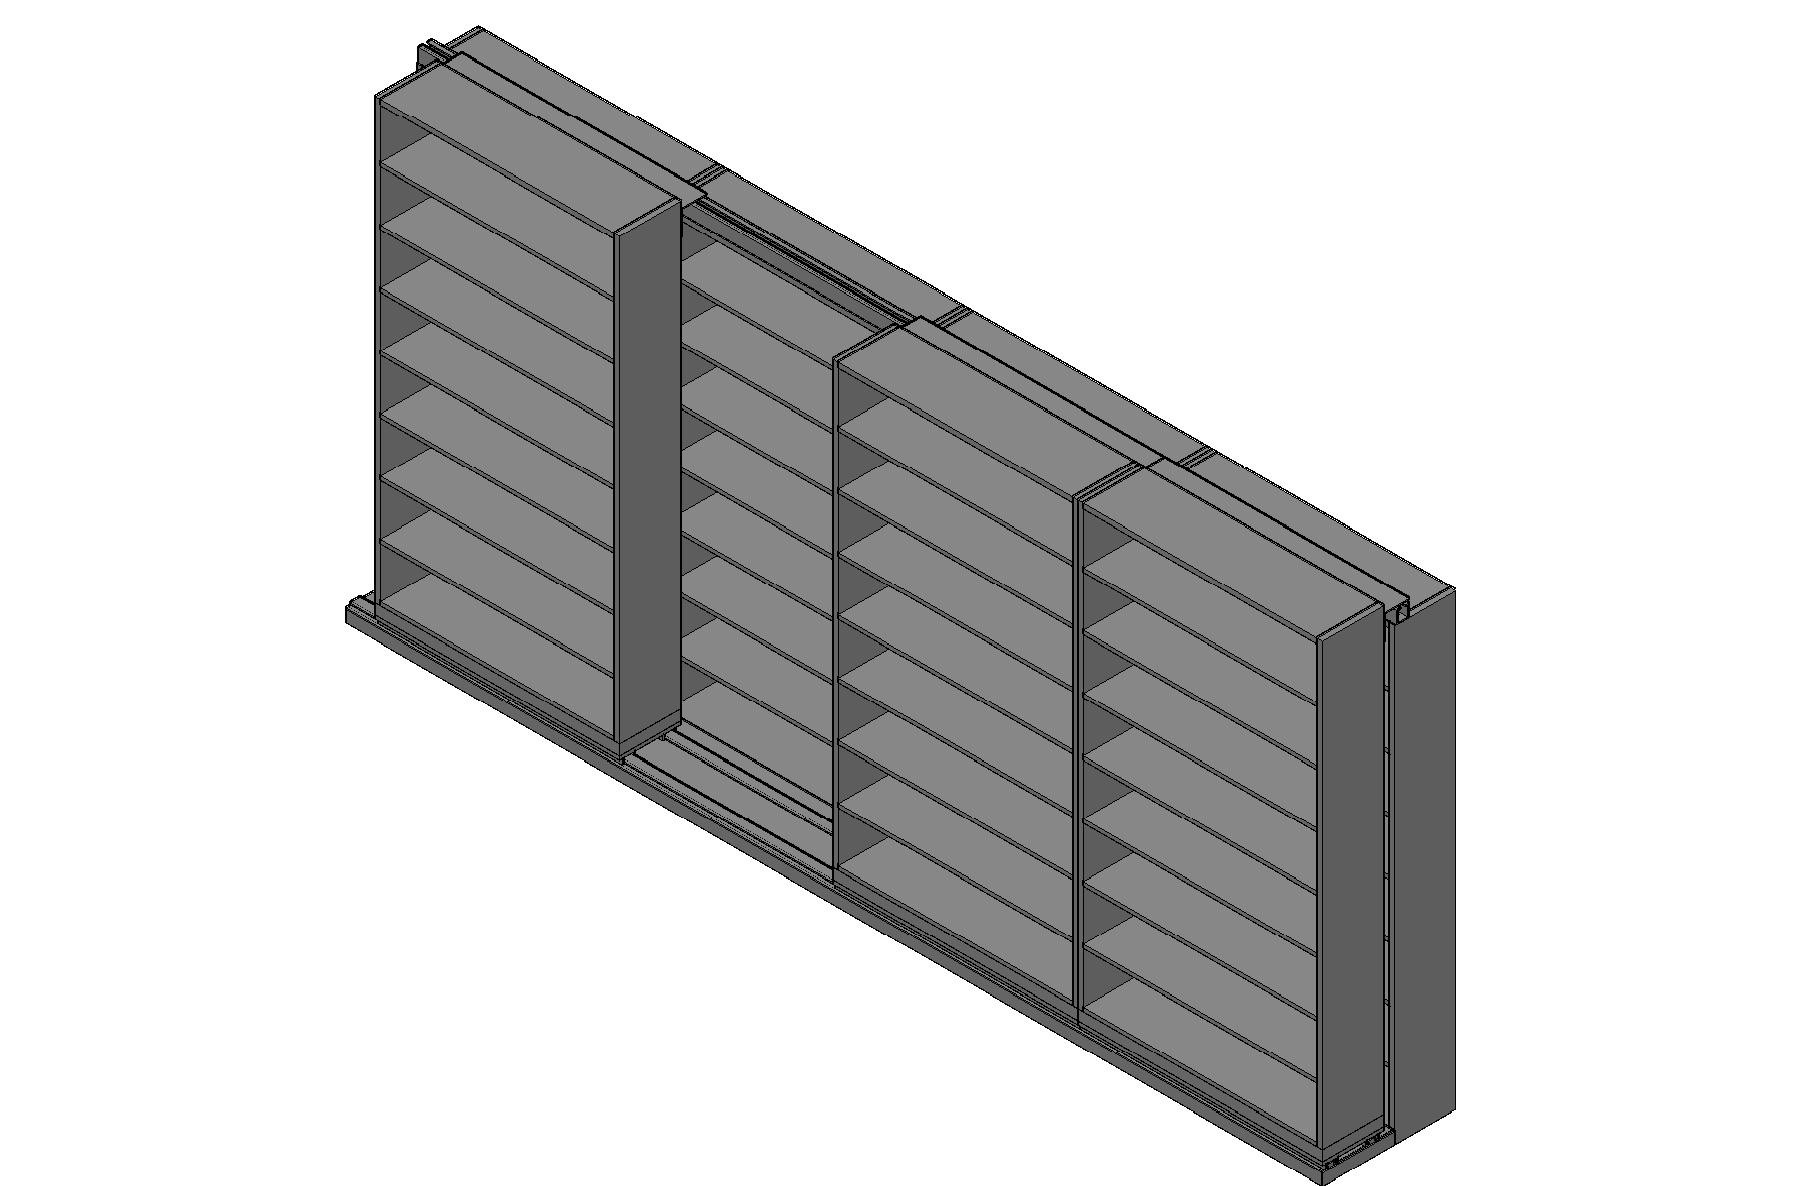 "Letter Size Sliding Shelves - 2 Rows Deep - 8 Levels - (48"" x 12"" Shelves) - 196"" Total Width"